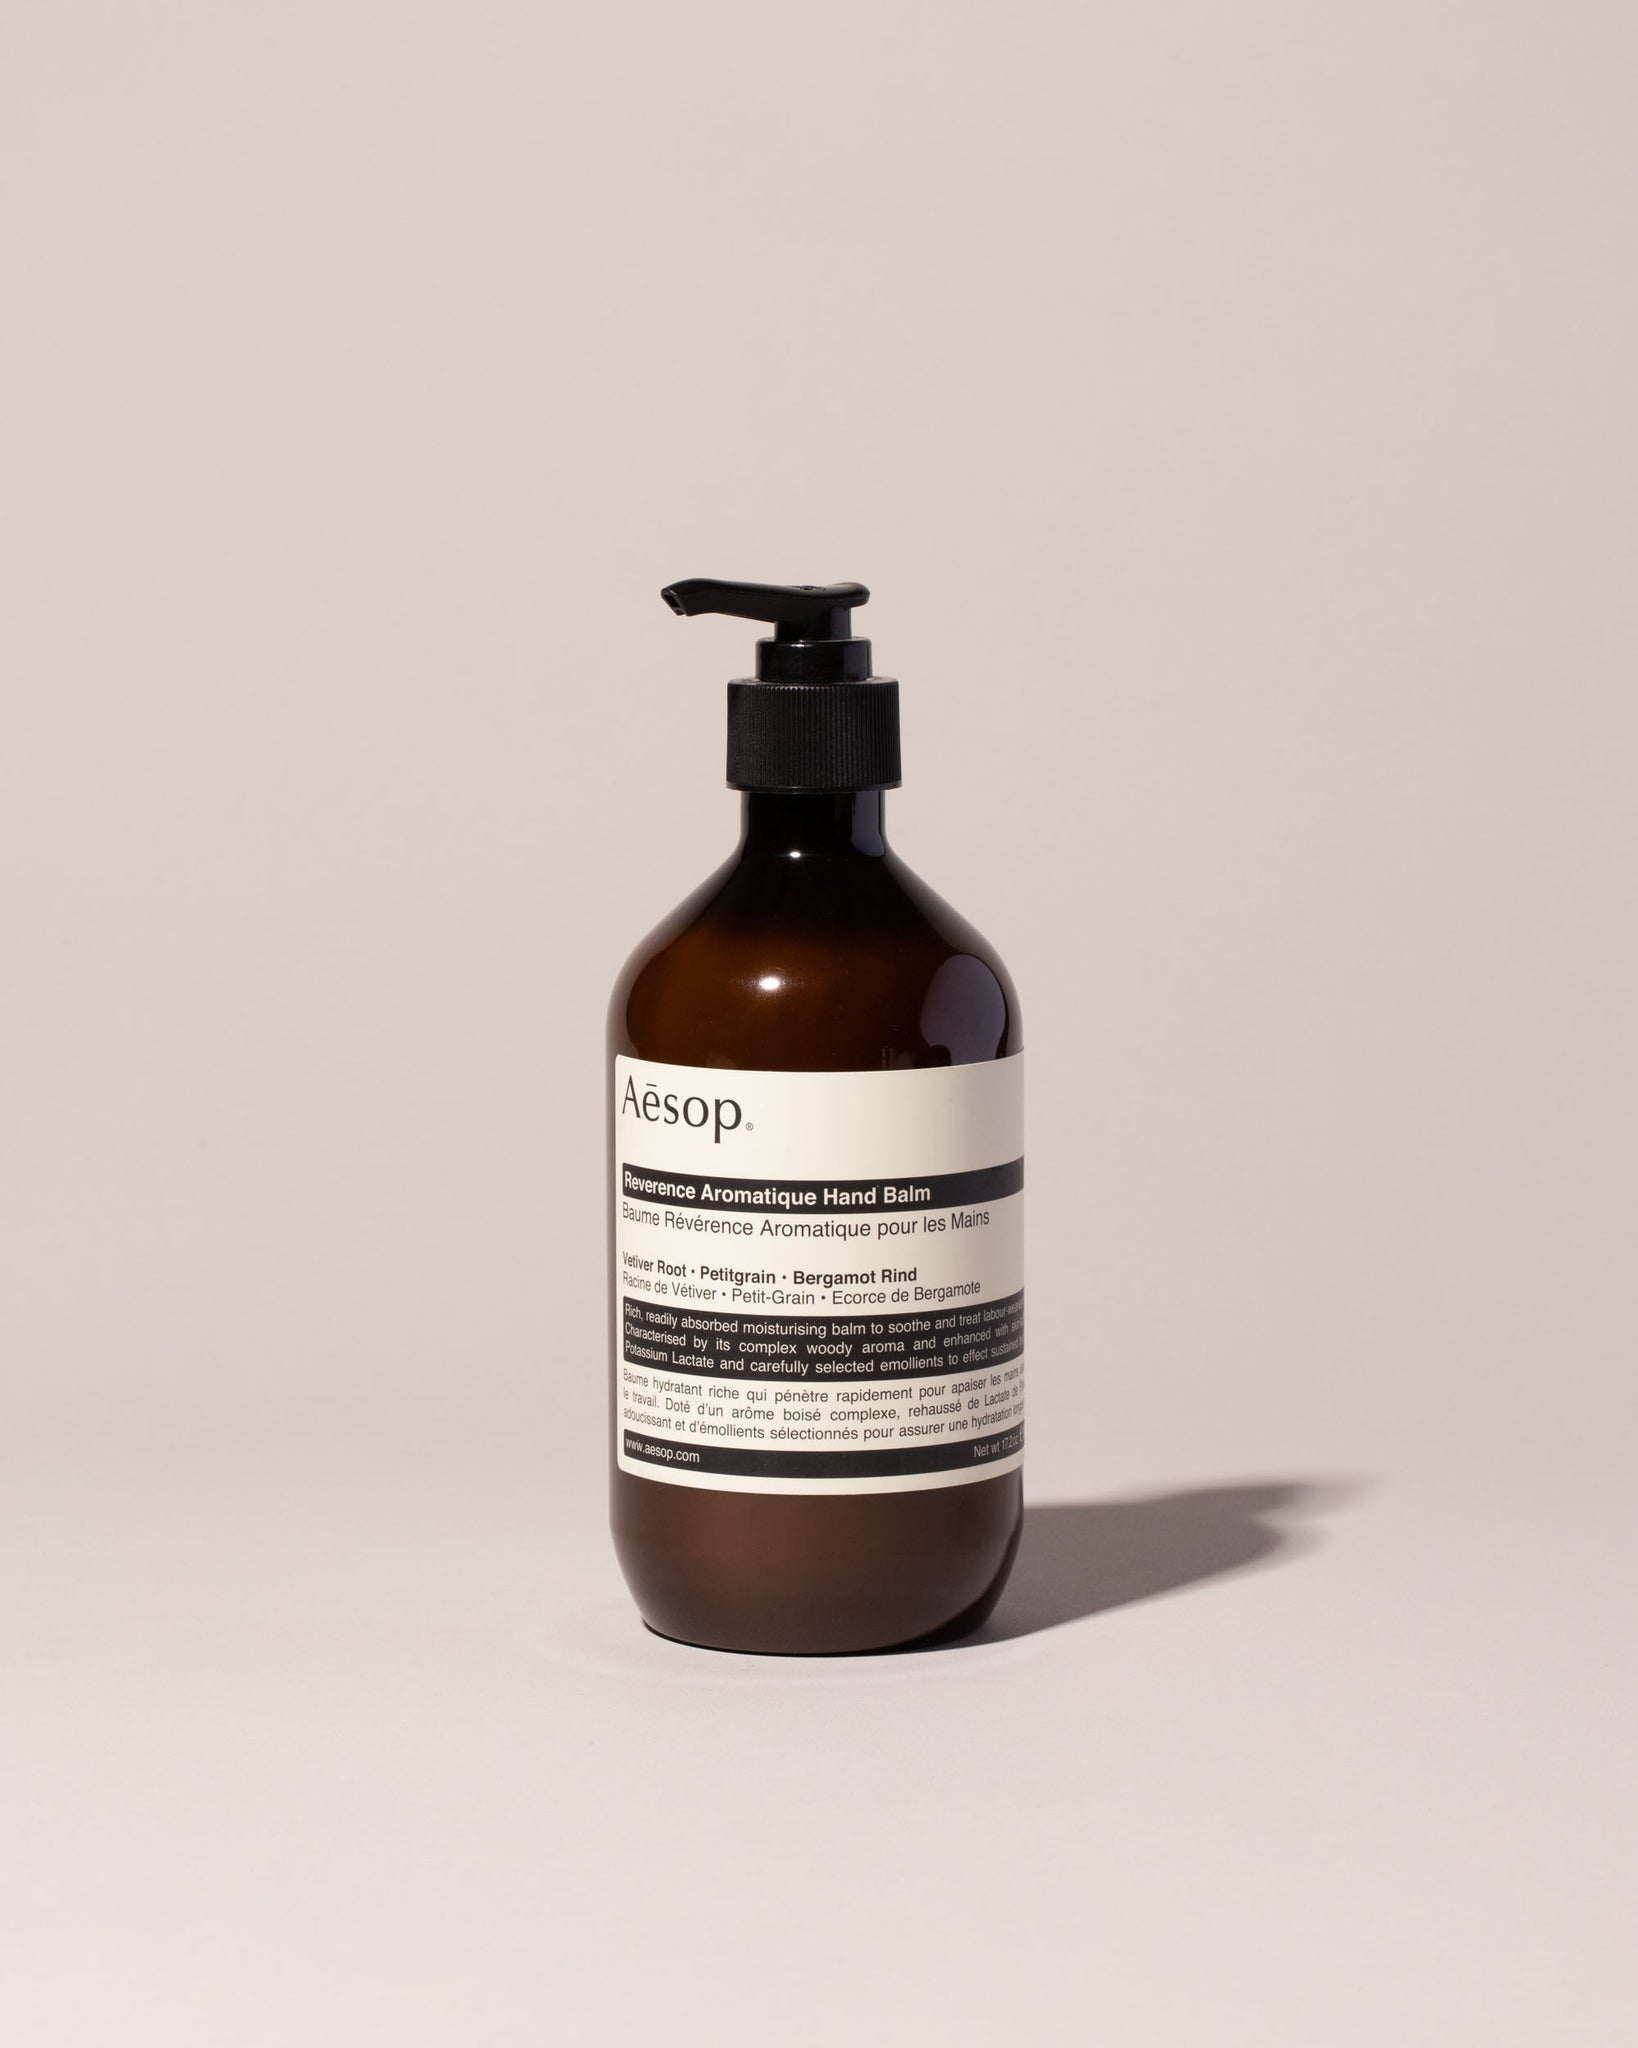 Aesop Reverence Hand Balm front view, dark brown pump bottle with a white label